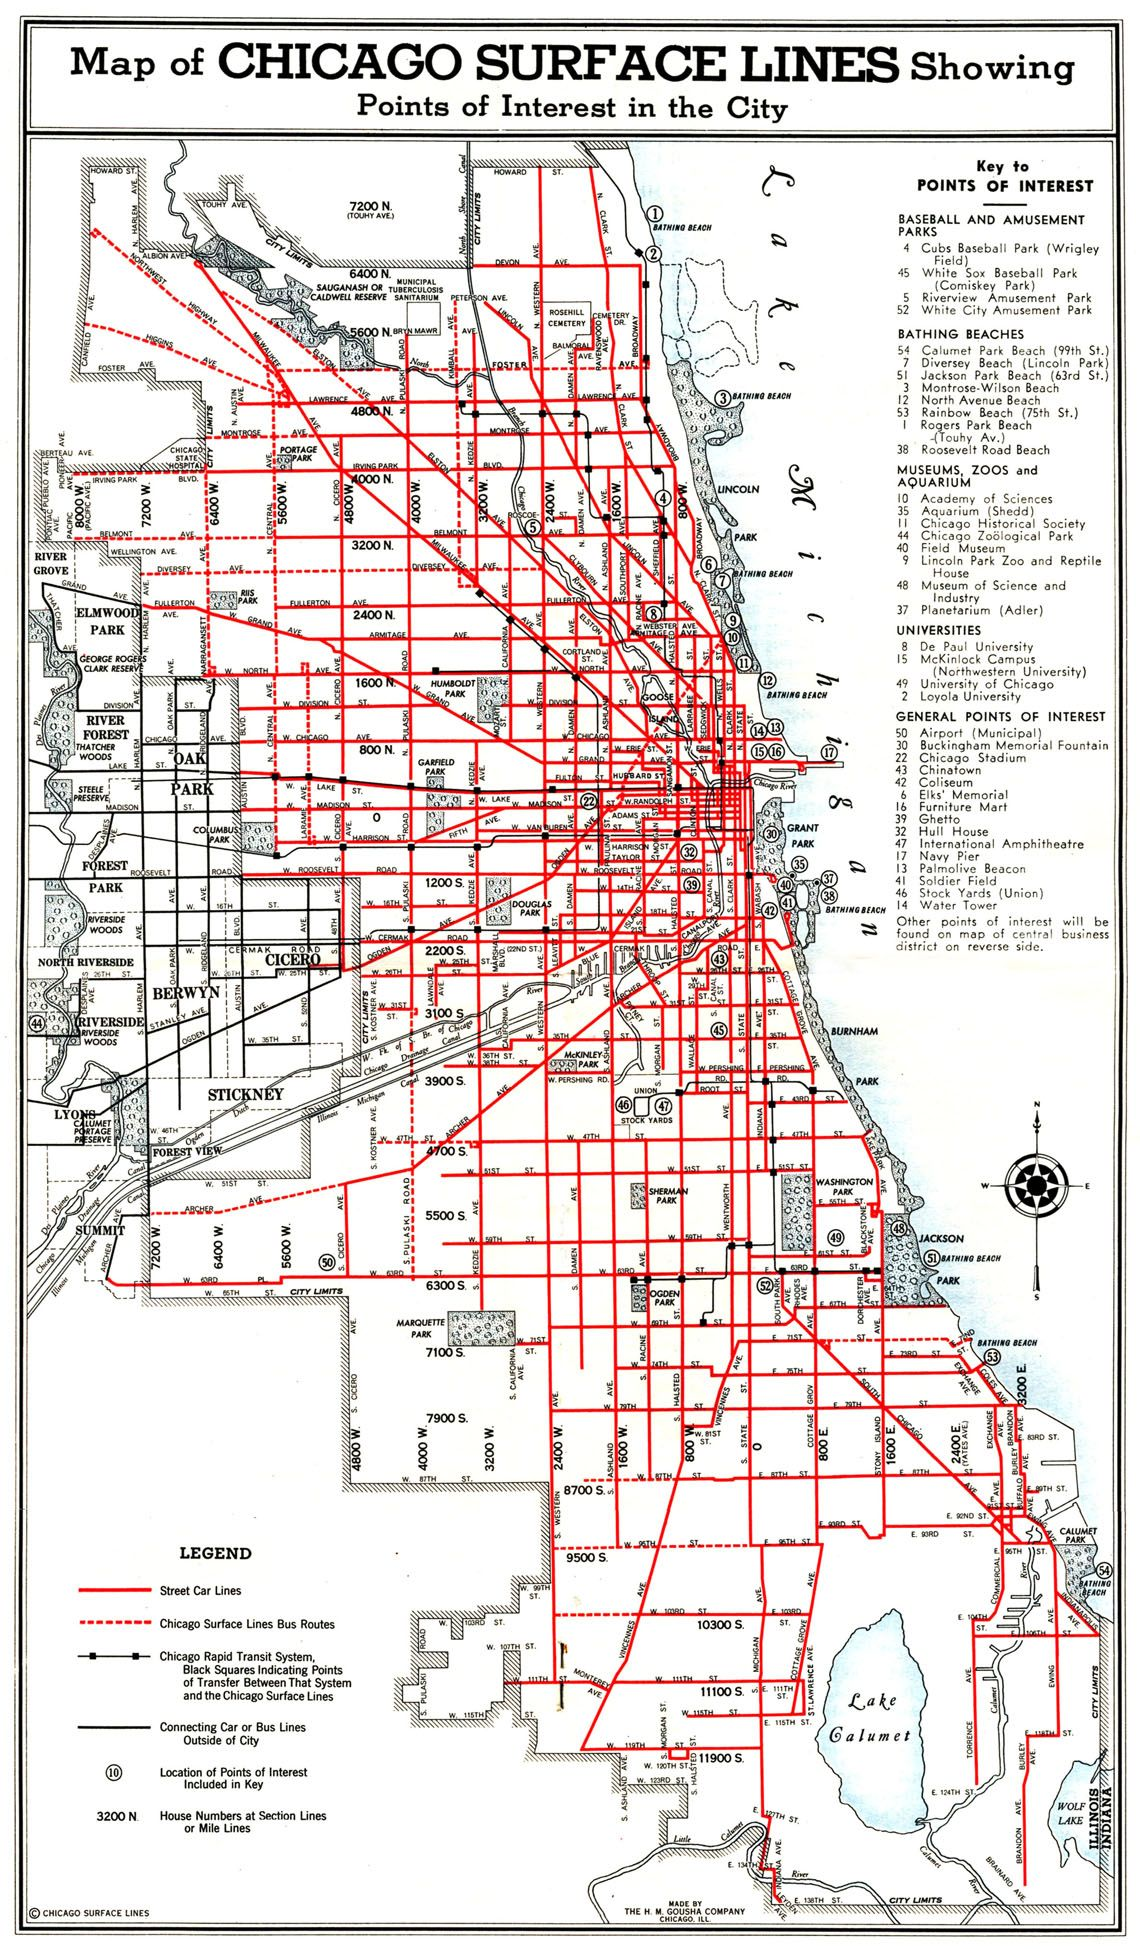 1937 Chicago Surface Lines—streetcars and trolley buses ... on philadelphia trolley map, chicago bridge tour map, chicago food map, chicago california map, chicago visitors map, chicago pedway map, chicago golf map, chicago street map, chicago canada map, chicago walking tour map, chicago museum map, chicago beaches map, hop on hop off chicago map, chicago christmas market 2014, chicago on us map, chicago aquarium map, chicago shopping map, chicago bus map, scottsdale trolley map, chicago water taxi,